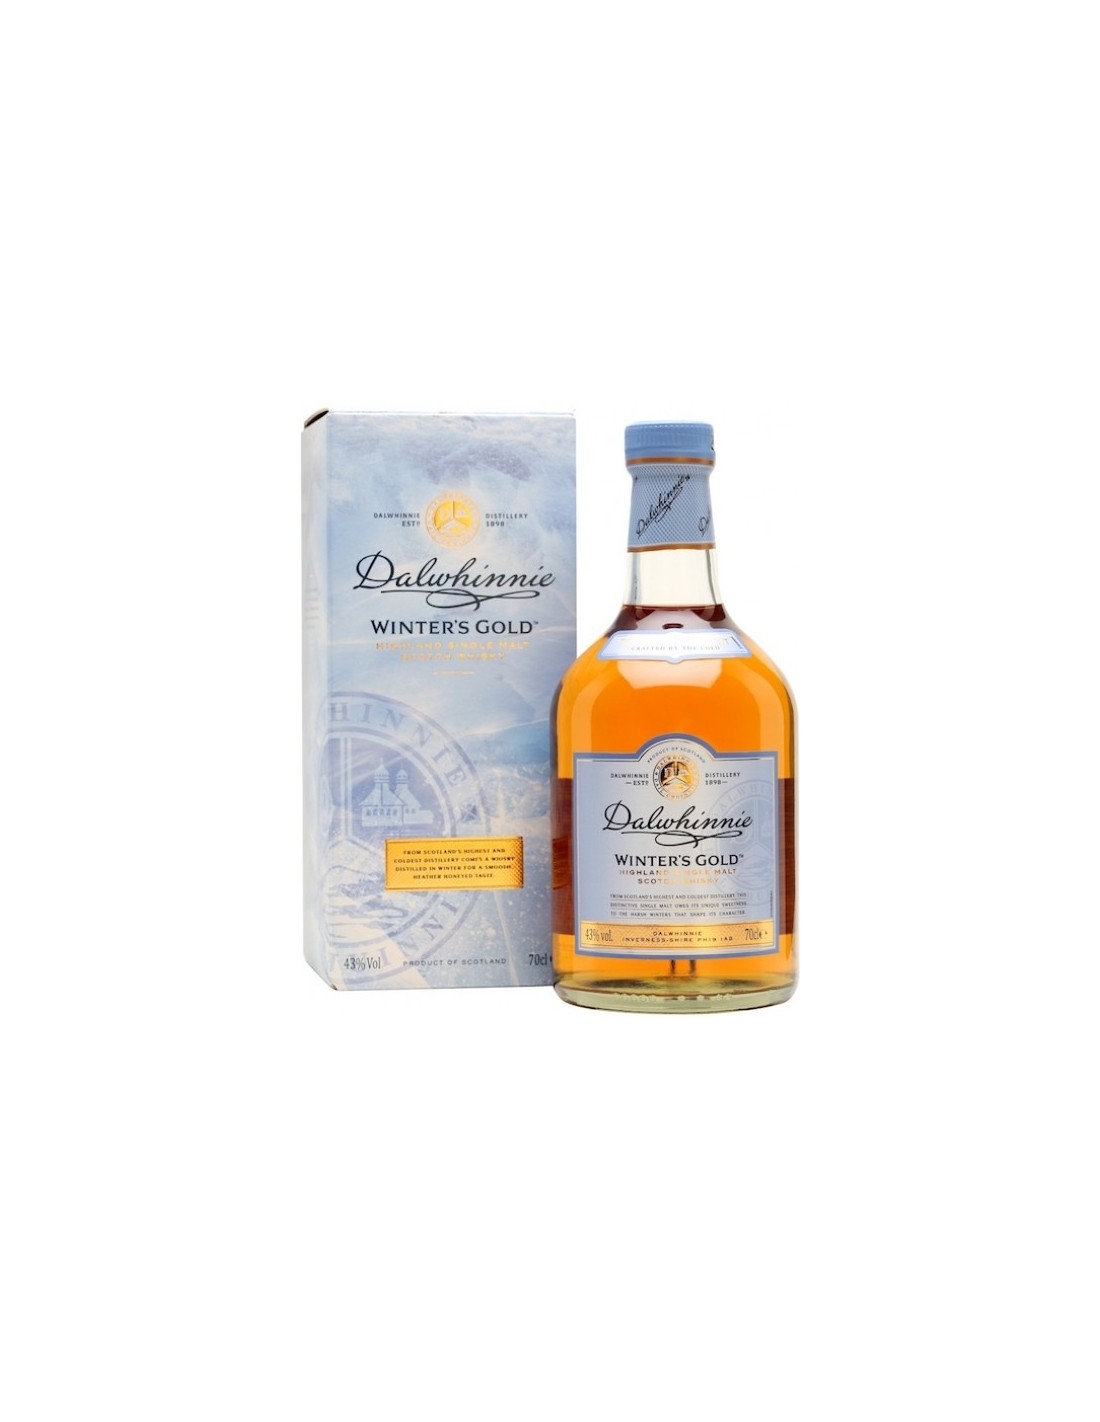 Whisky Dalwhinnie Whinter's Gold, 43% alc., 0.7L, Scotia